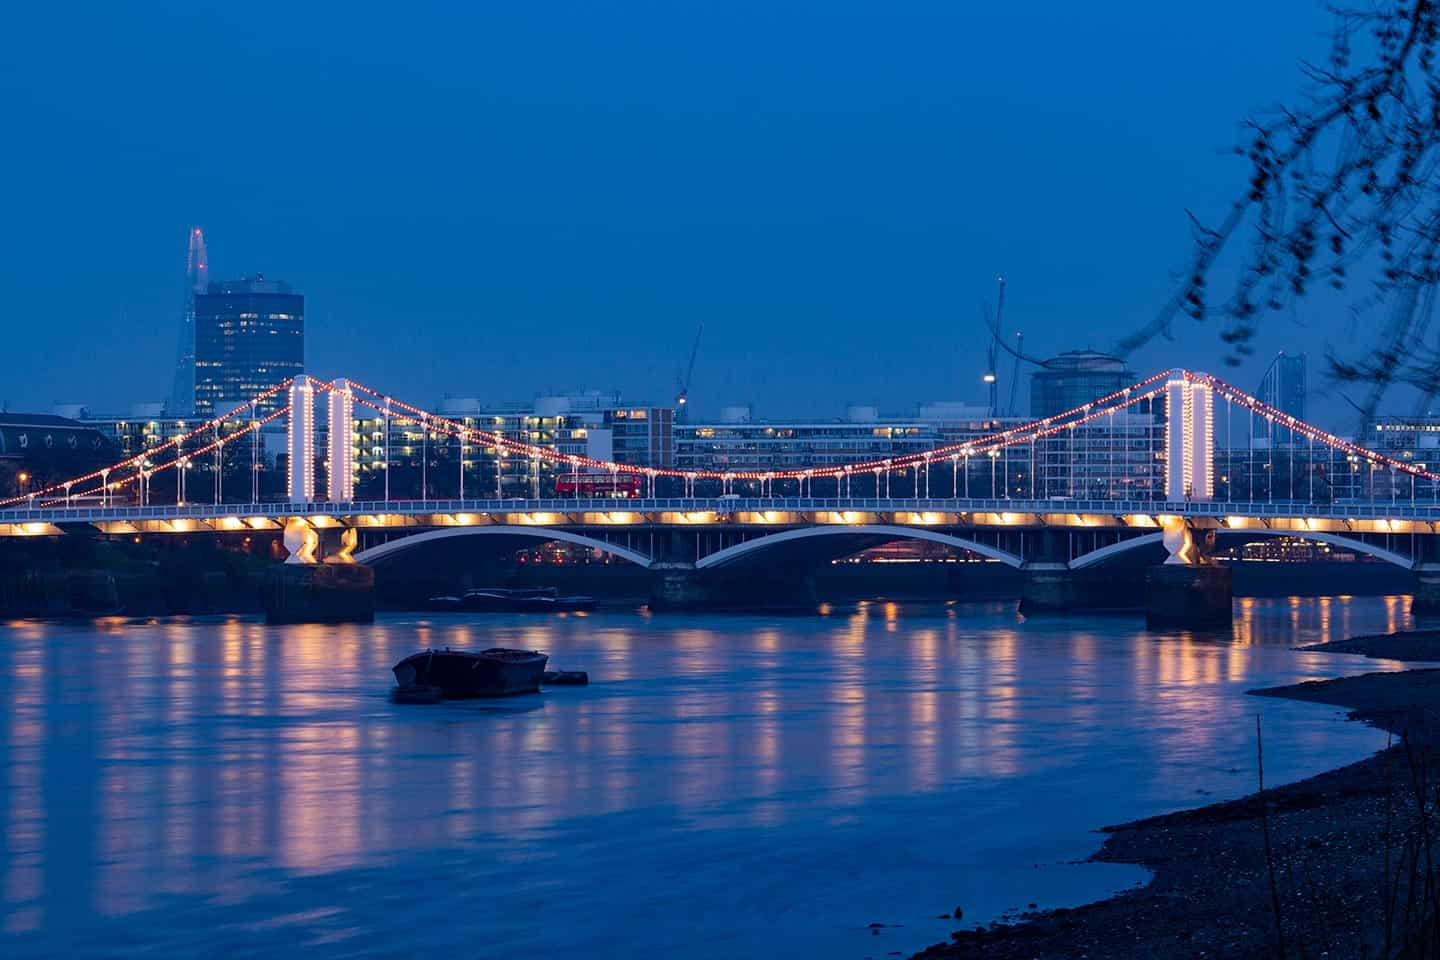 Image of Chelsea Bridge London at night